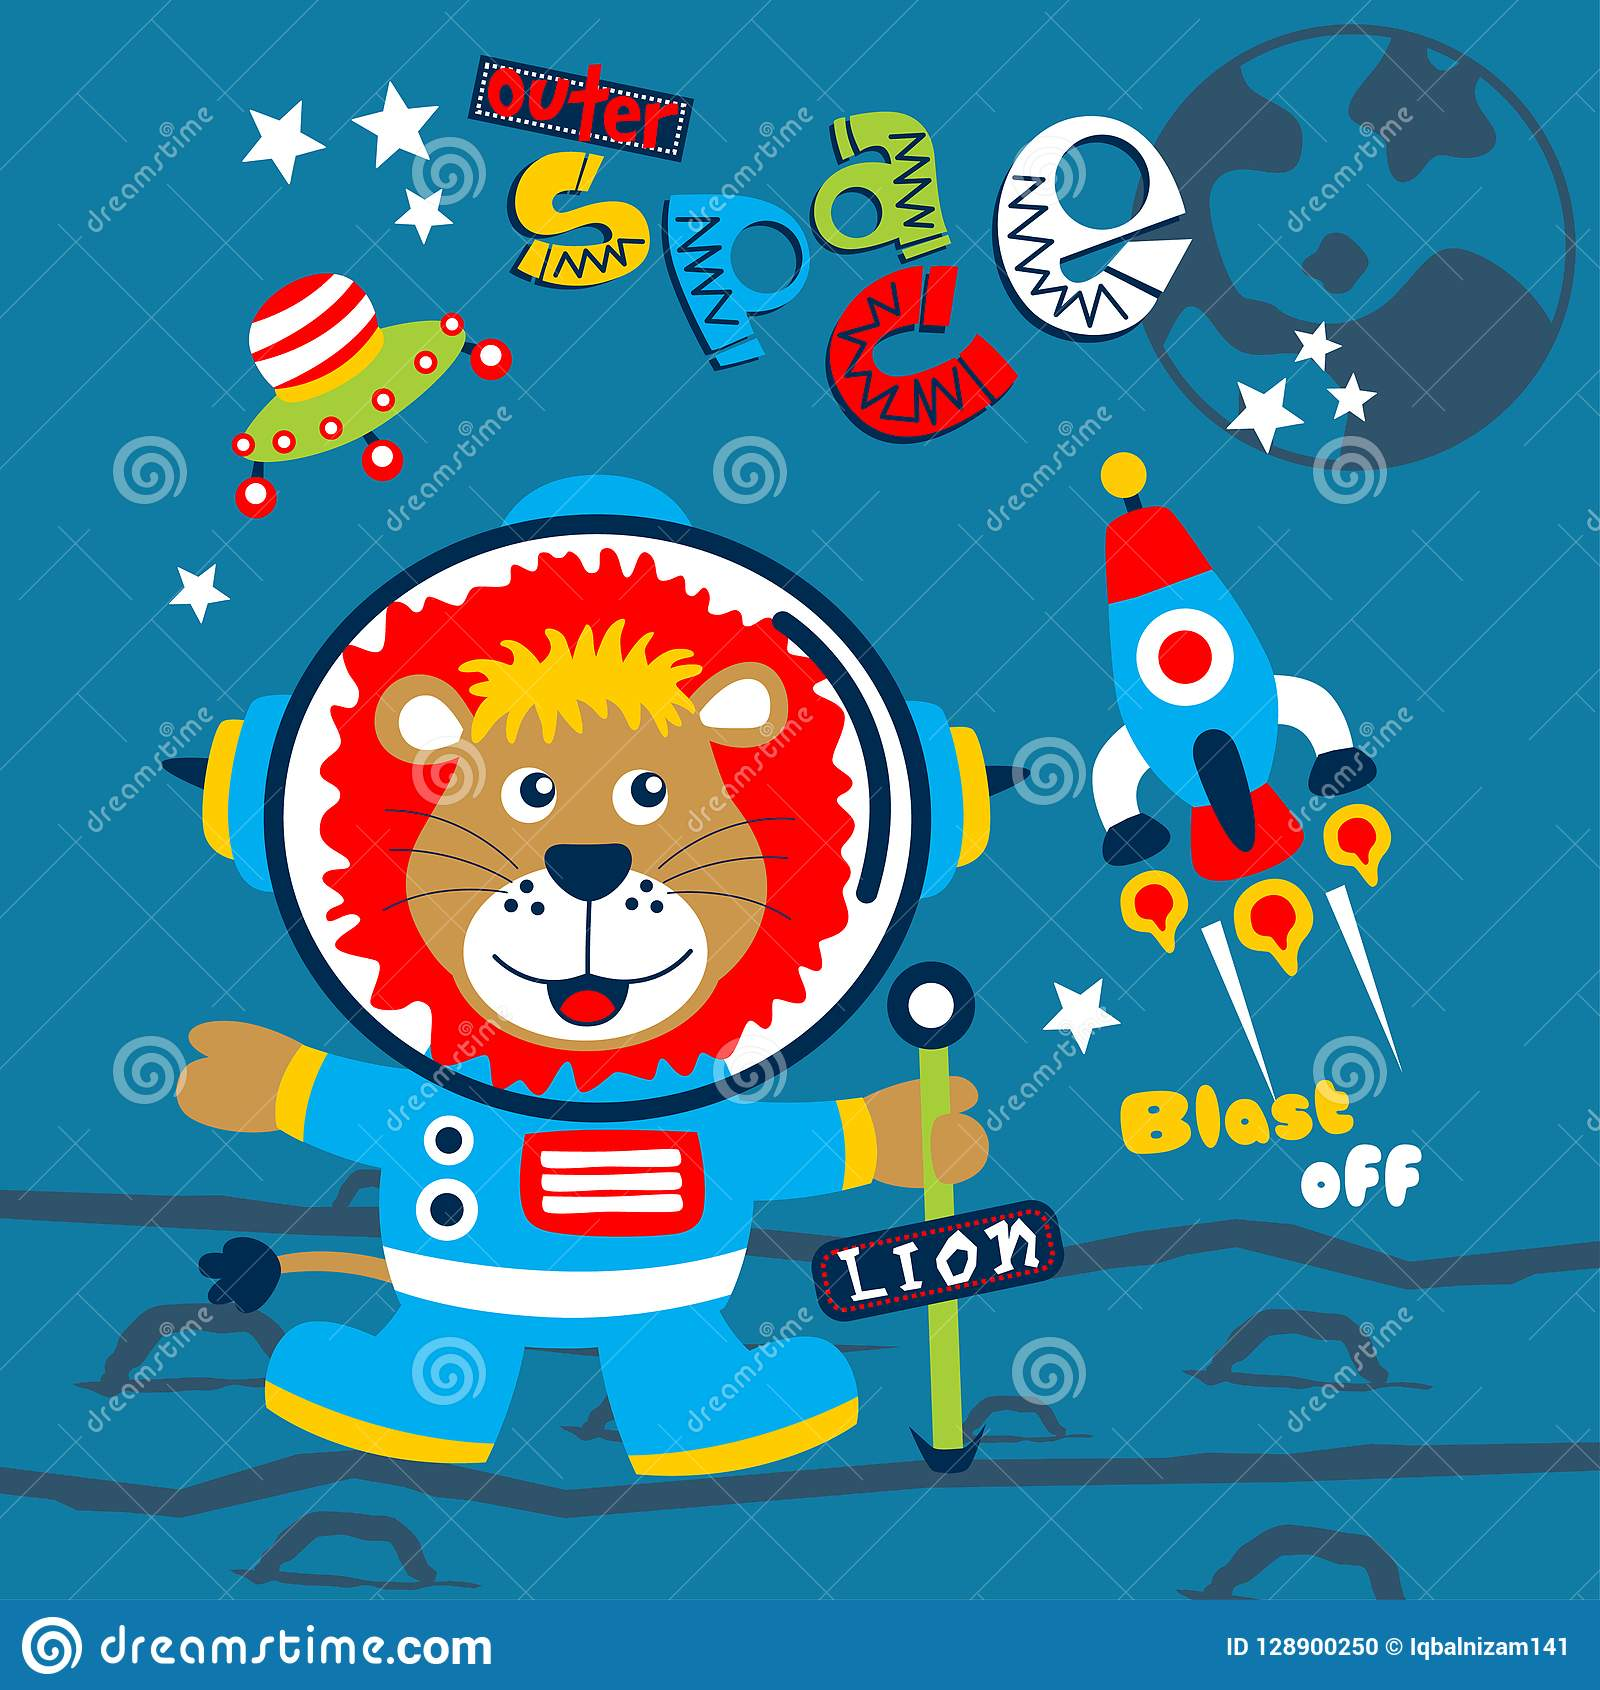 Outer space funny animal cartoon,vector illustration for t shirt and wallpaper or book